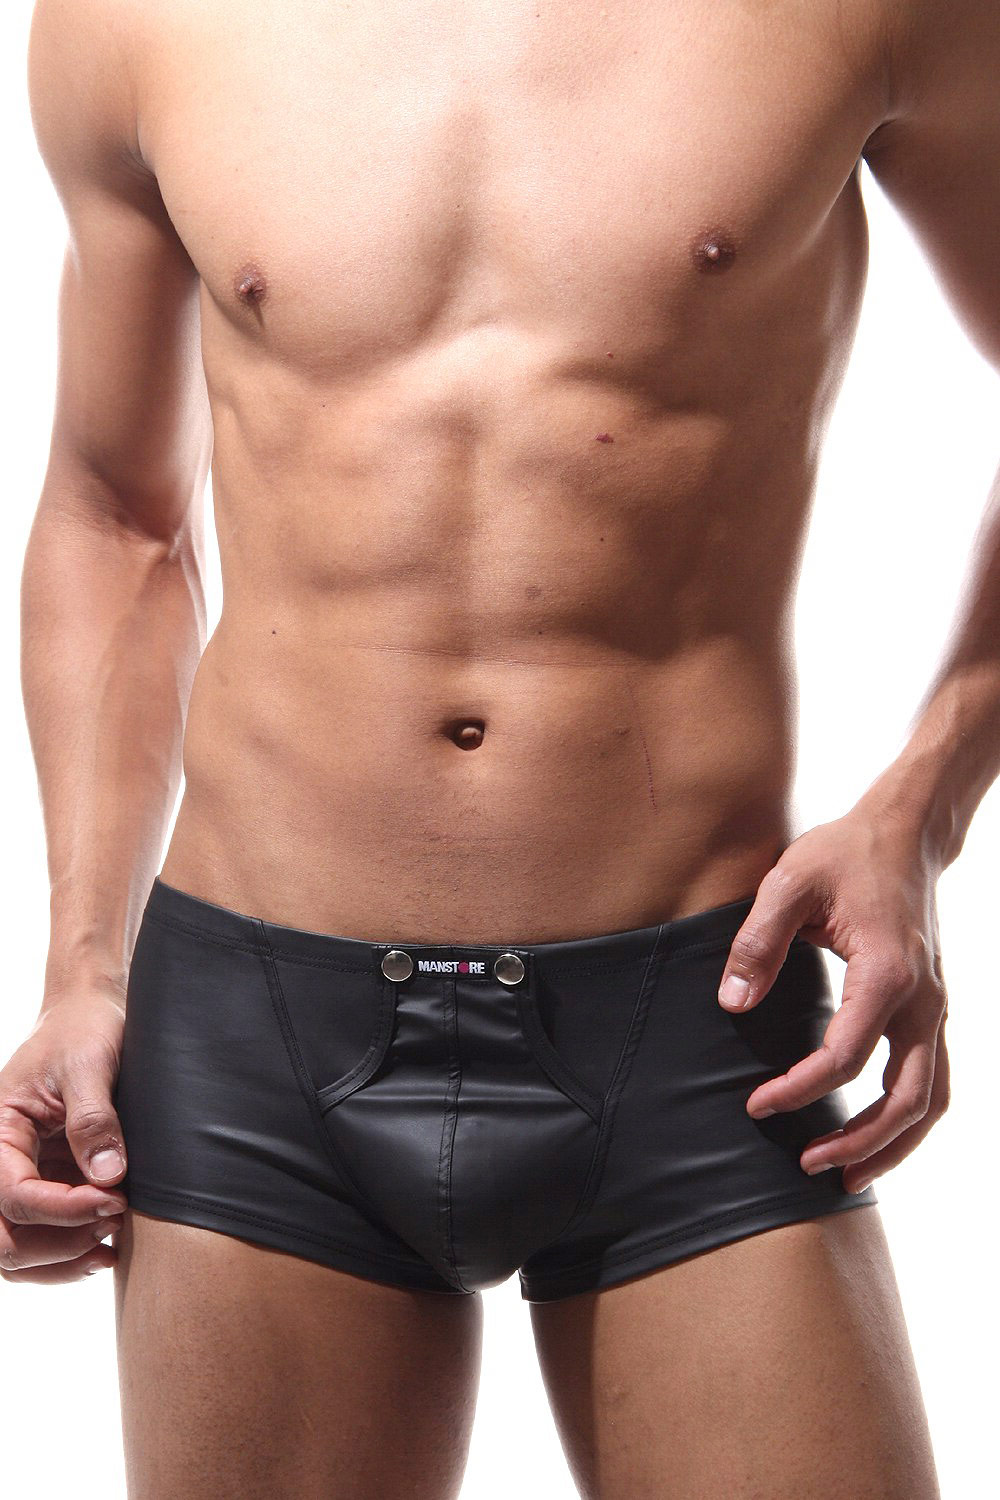 MANSTORE M104 click trunks at oboy.com